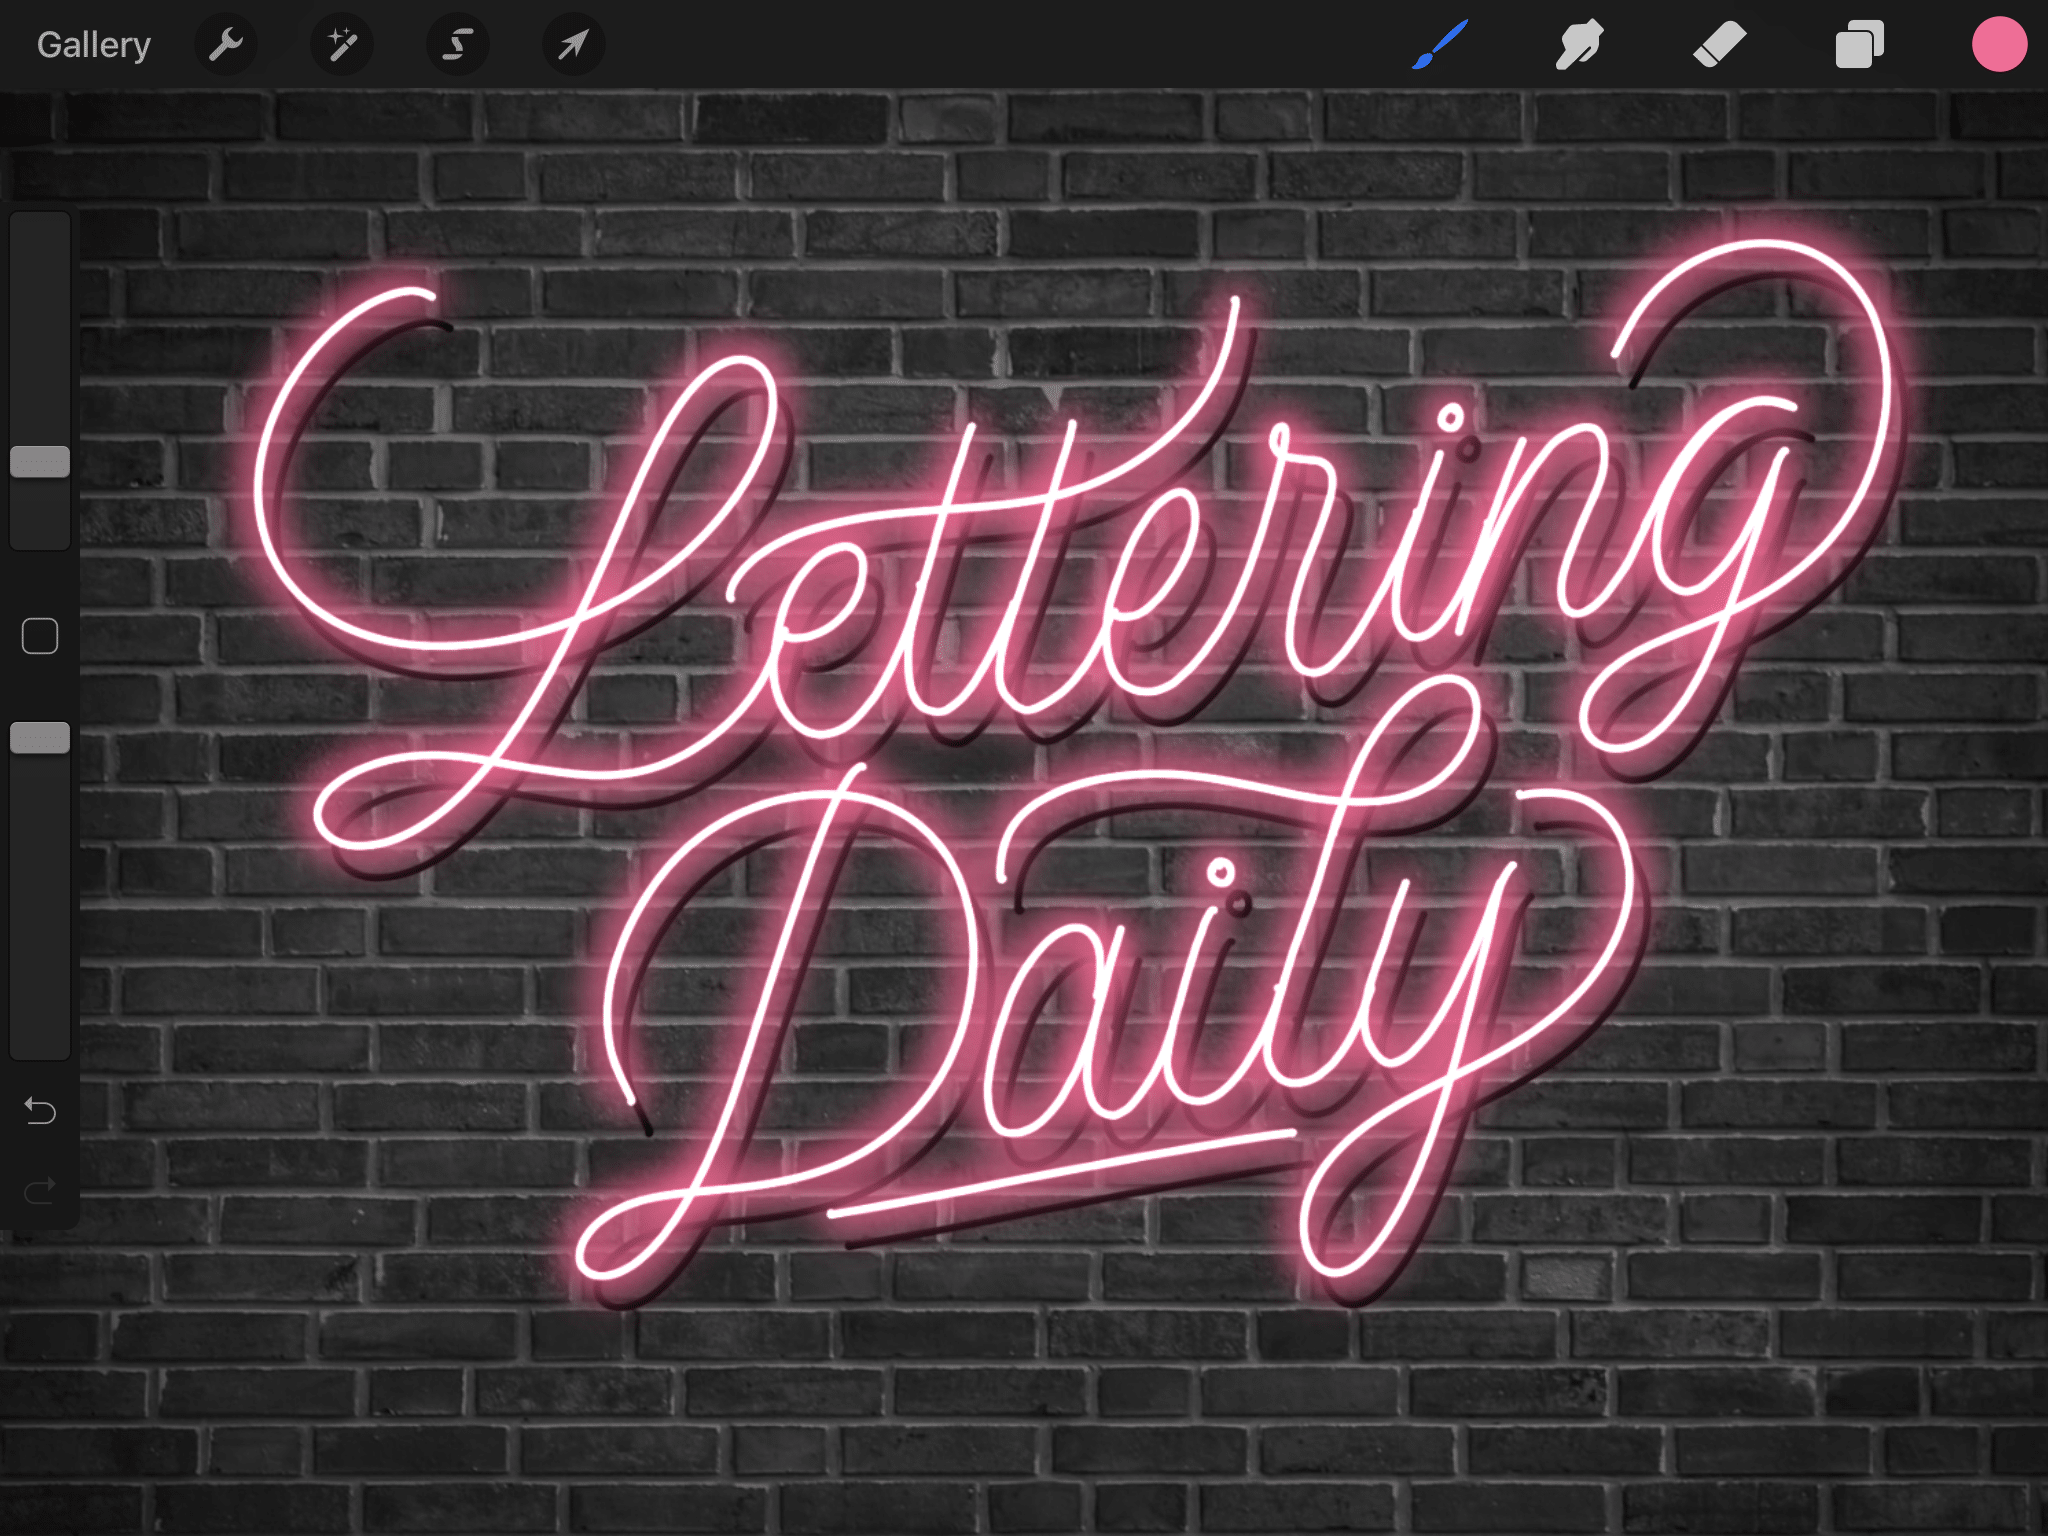 How To Create Neon Lettering In Procreate Tutorial 2020 Lettering Daily Lettering Procreate Tutorial Neon Signs